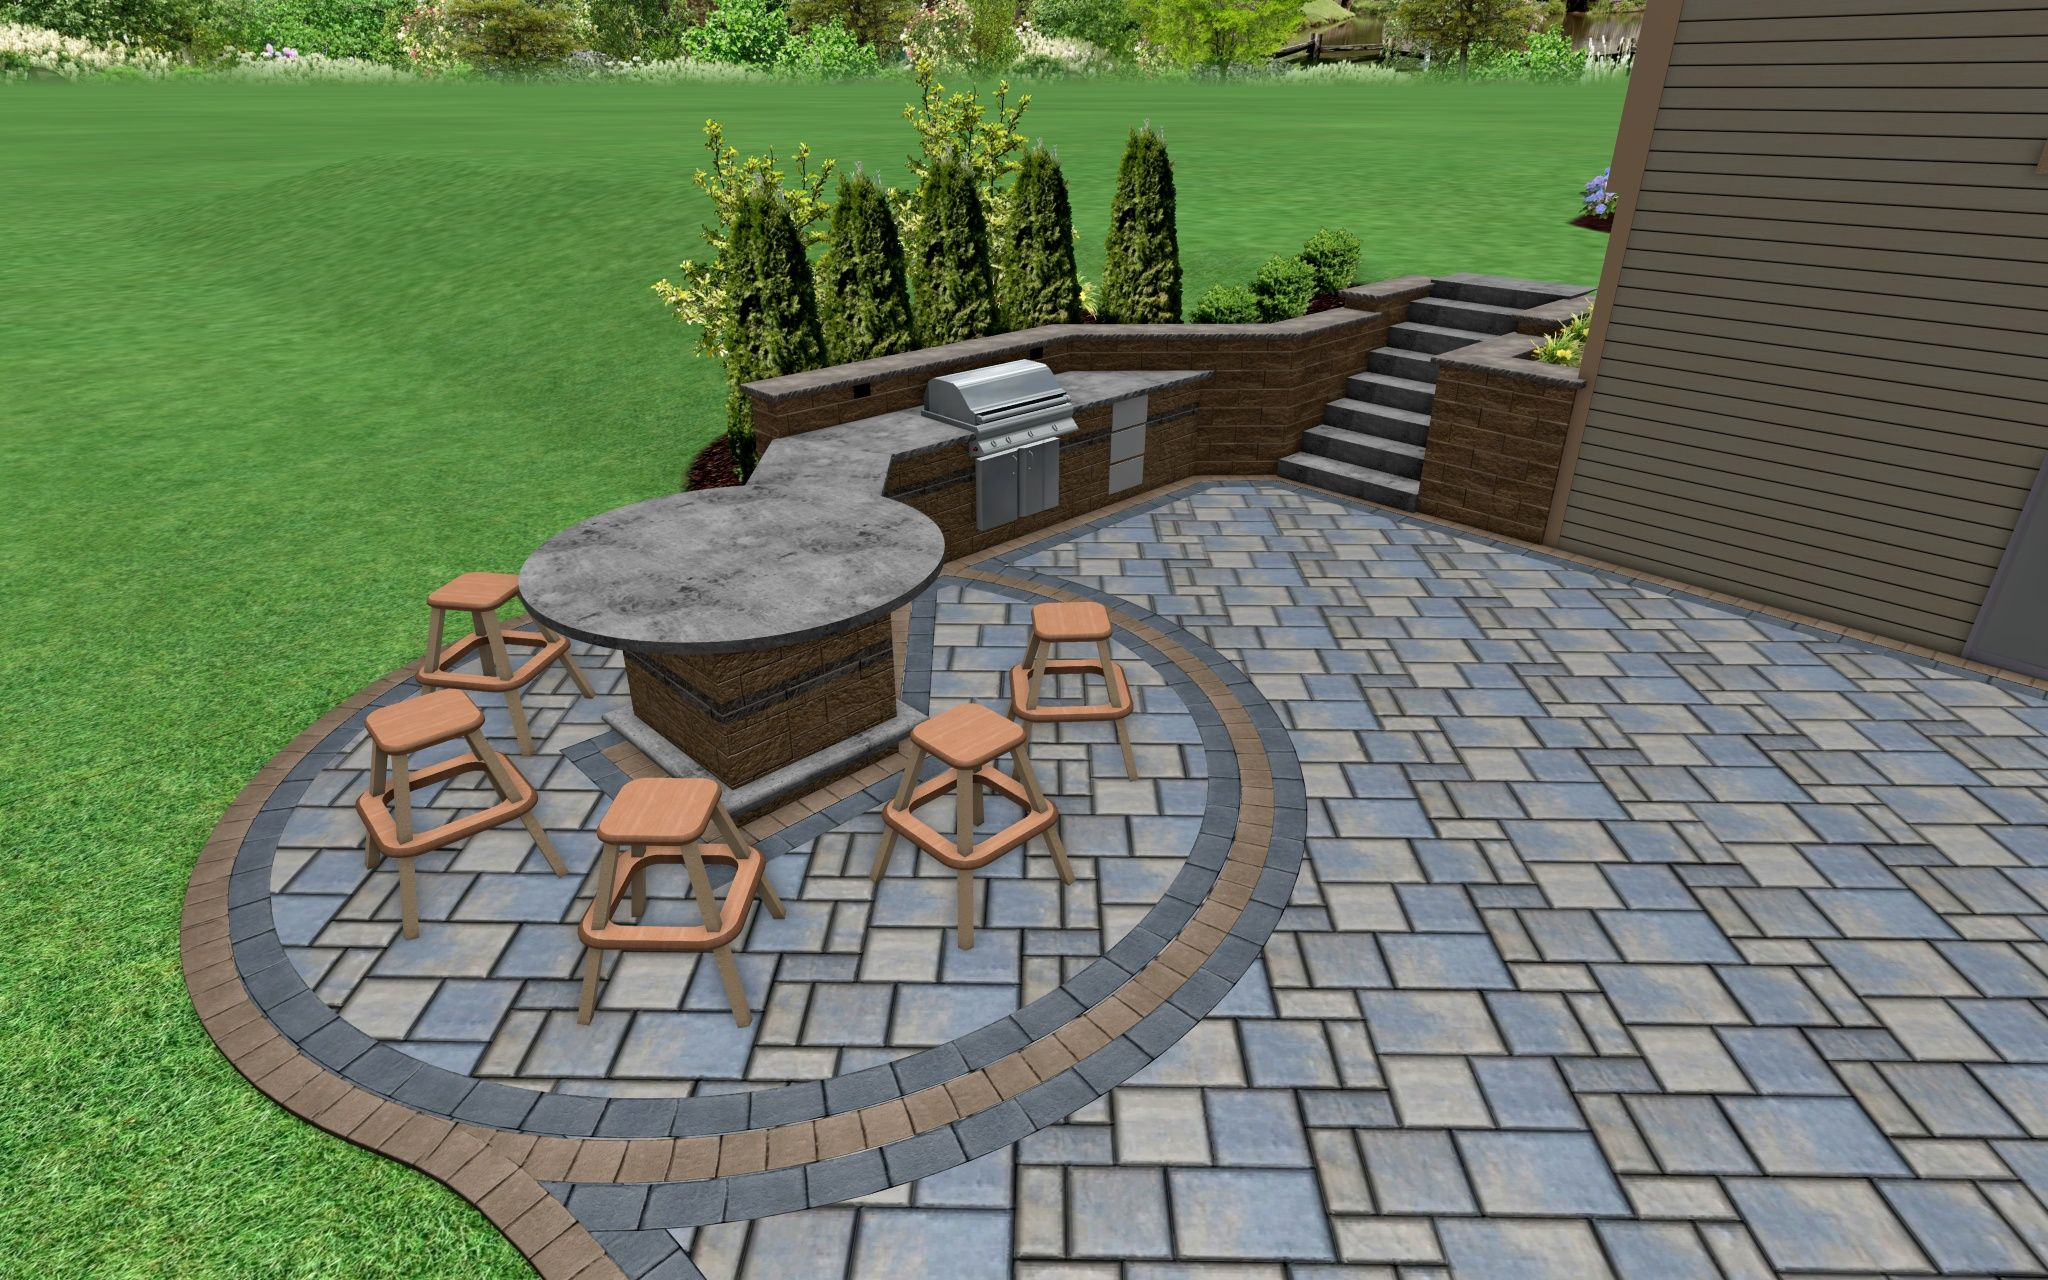 3d Design Outdoor Kitchen And Raised Bar Landscape Design Software Landscape Architect Software Design